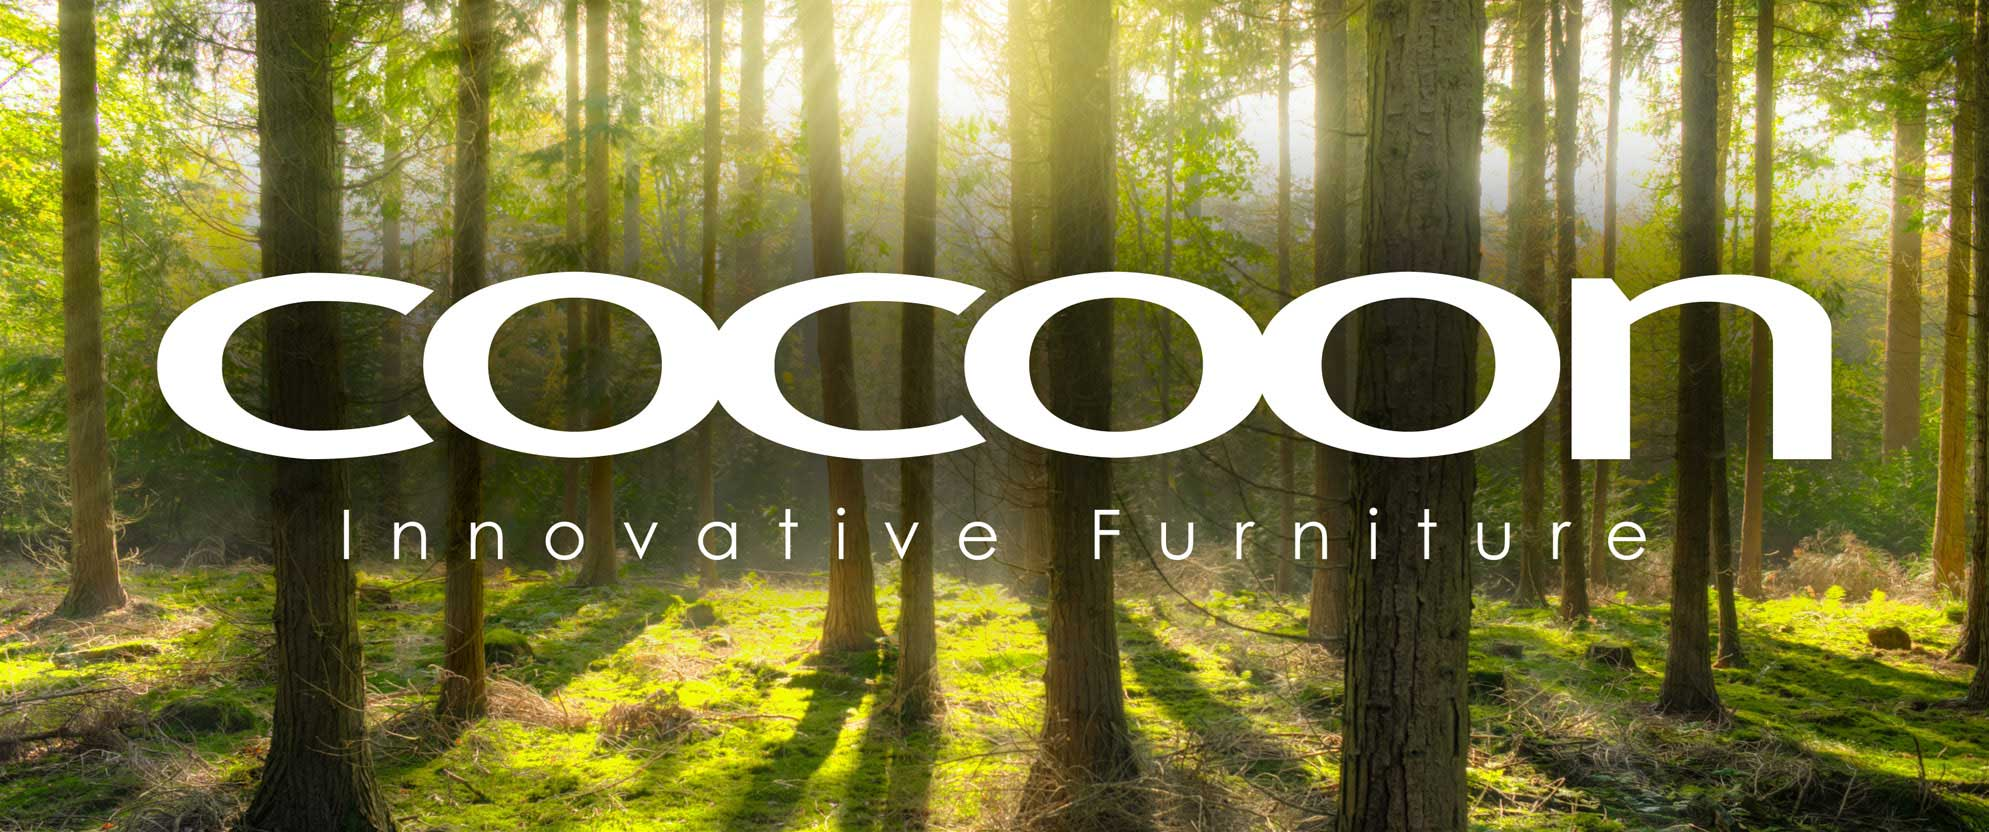 Cocoon Innovative Furniture